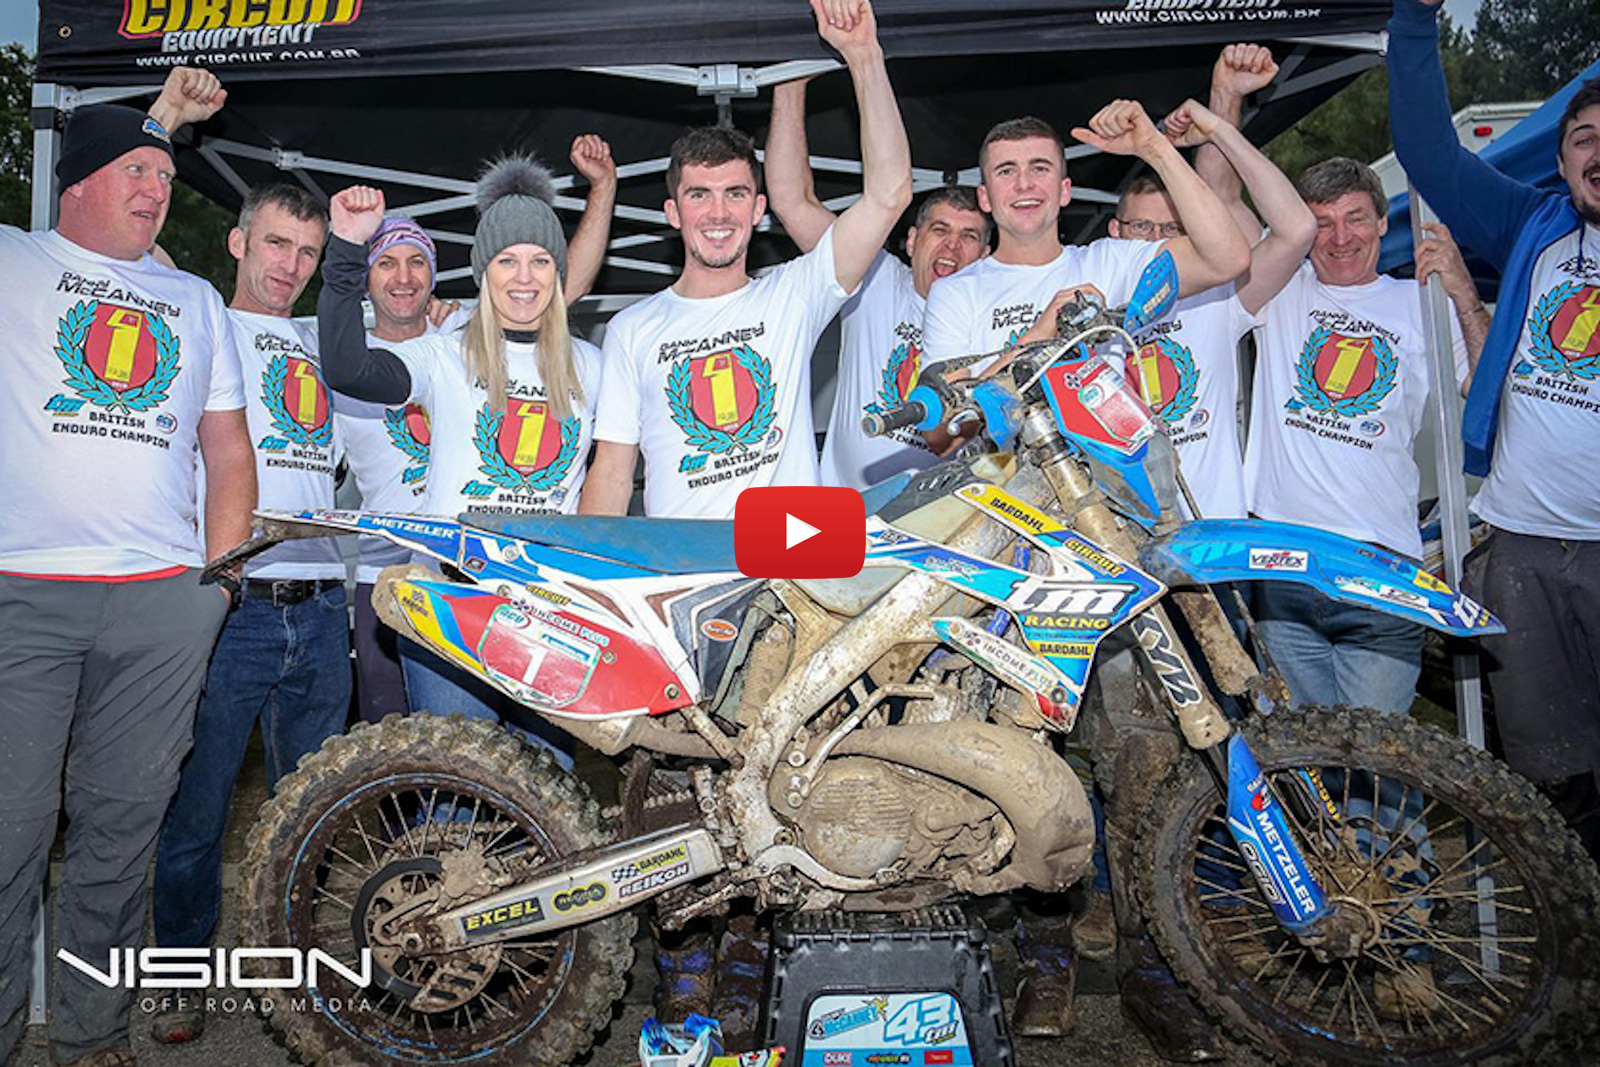 Event Highlights - Natterjack British Enduro day 1 - McCanney and Edmondson crowned champions